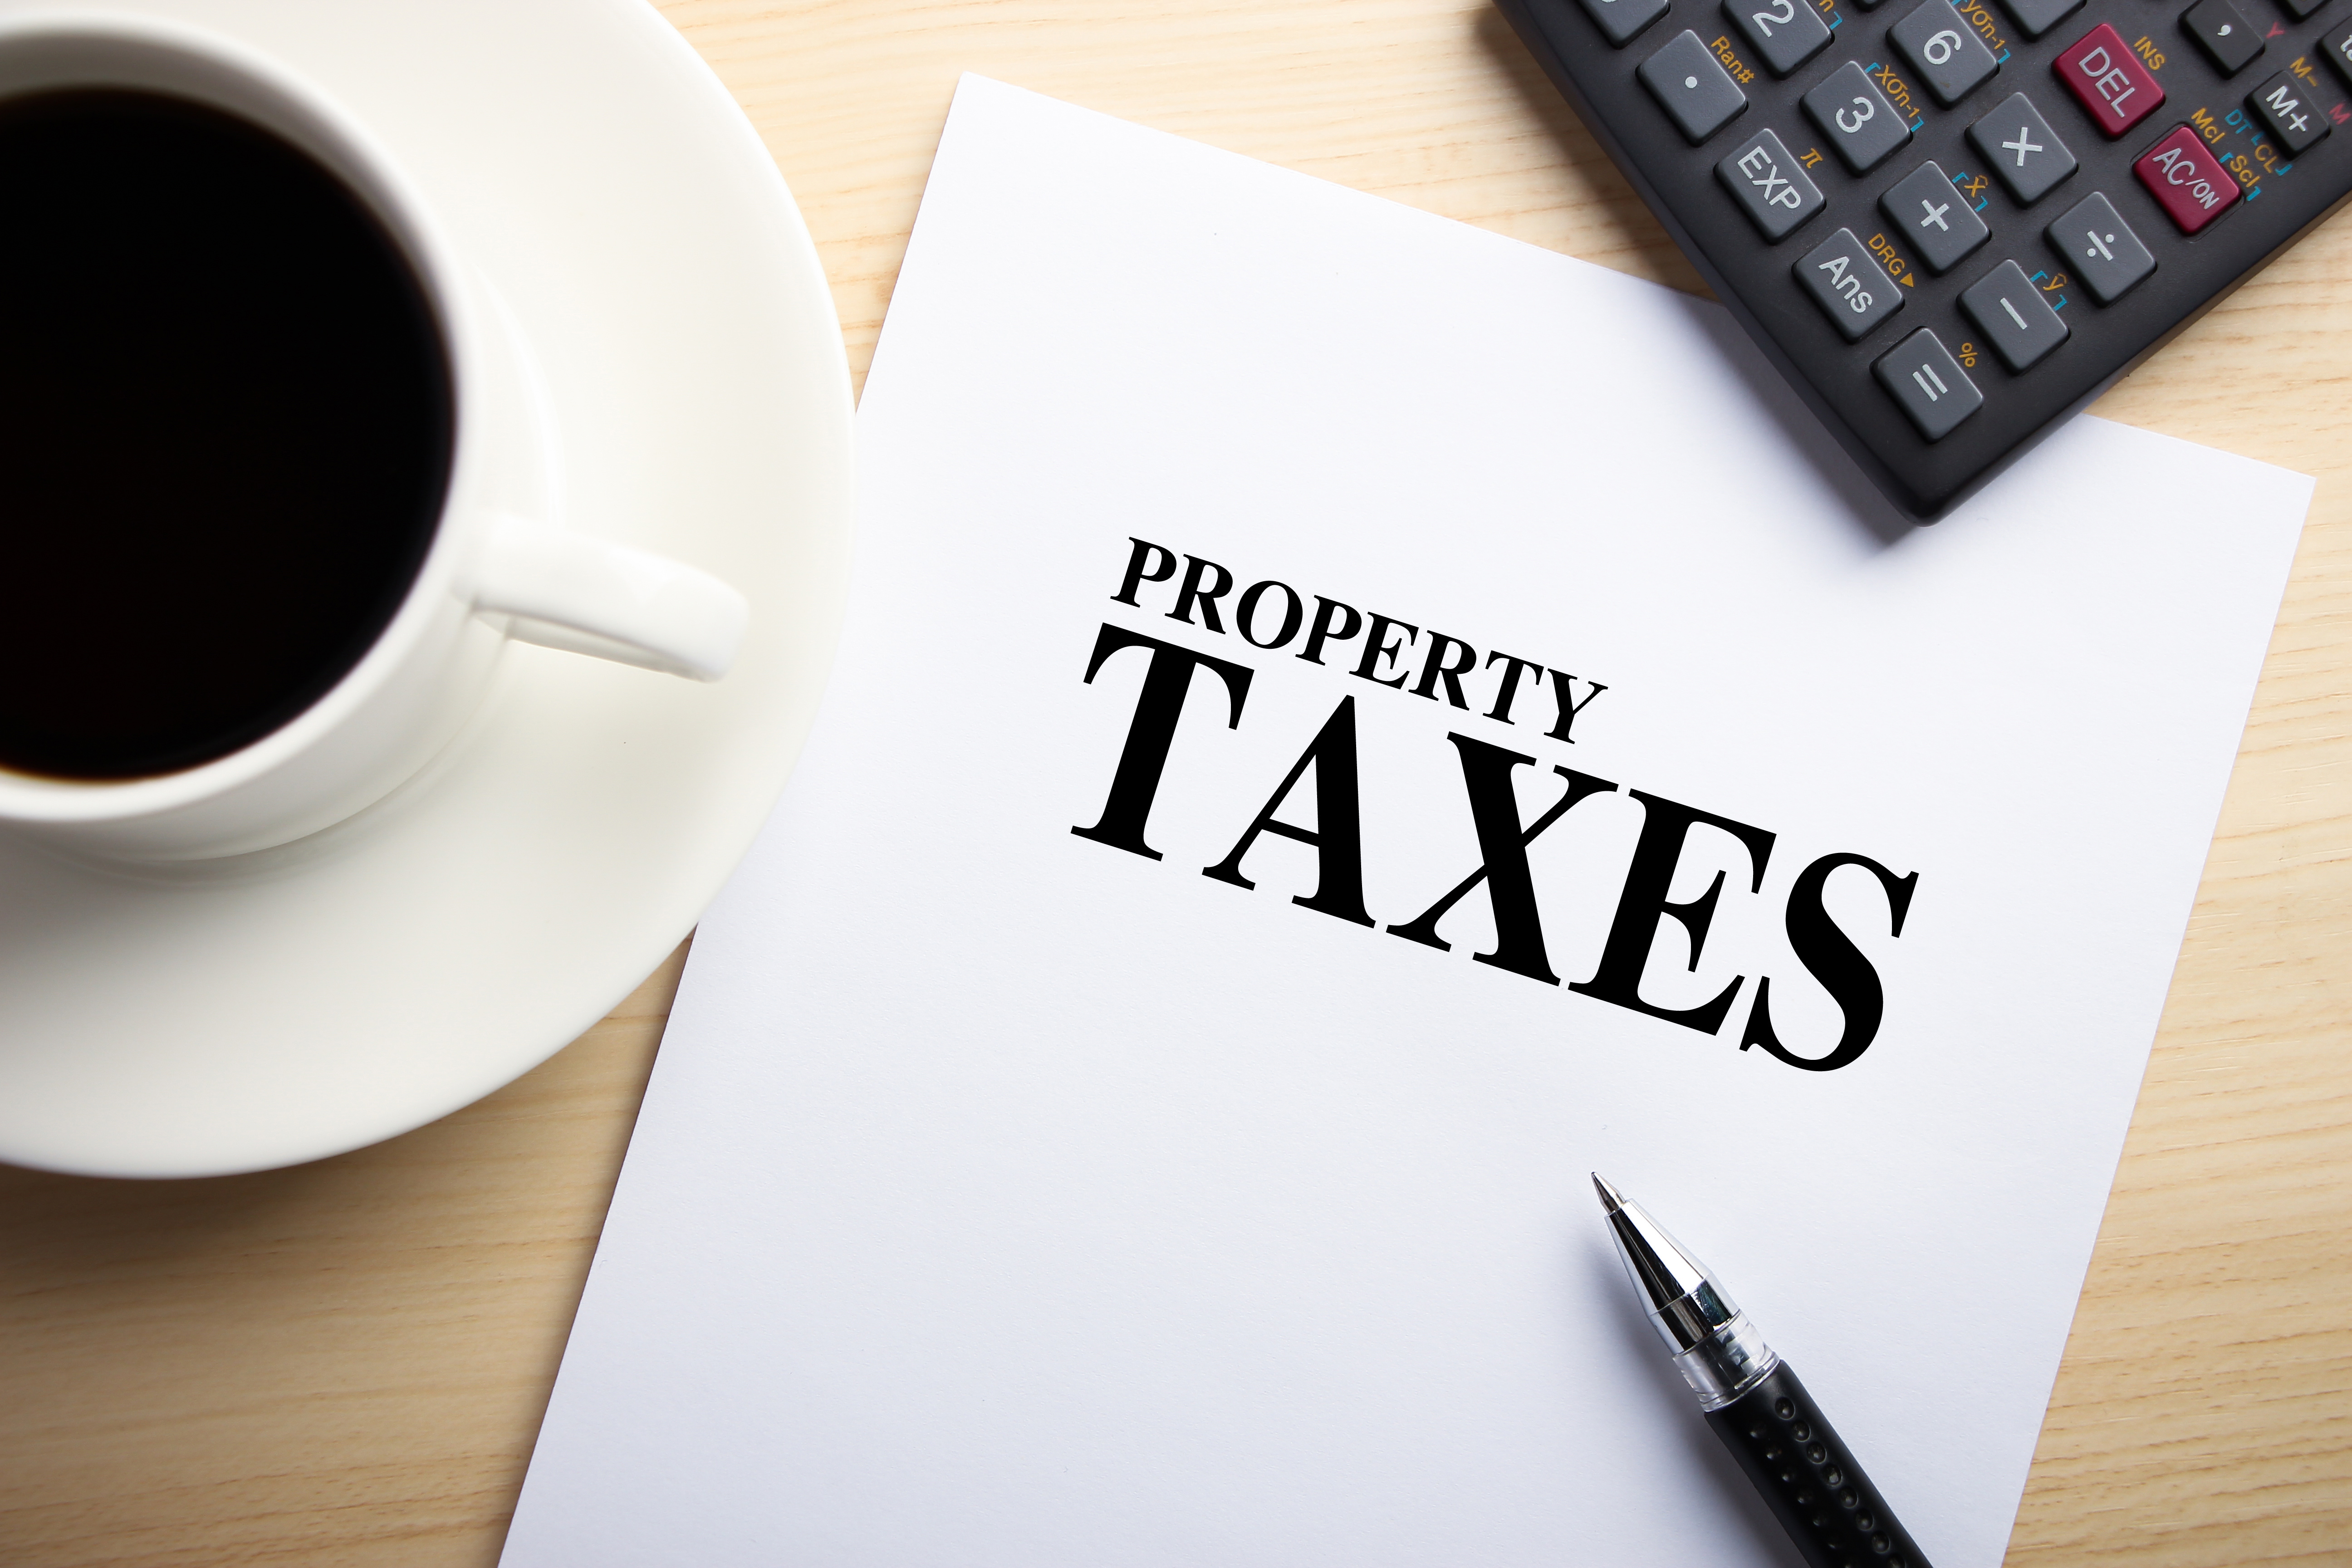 Lake county treasurer david stolman attorney robert monahan 847 what it does for lake county and what challenges it has faced over the last few years especially with regard to the changes in the tax code regarding solutioingenieria Images